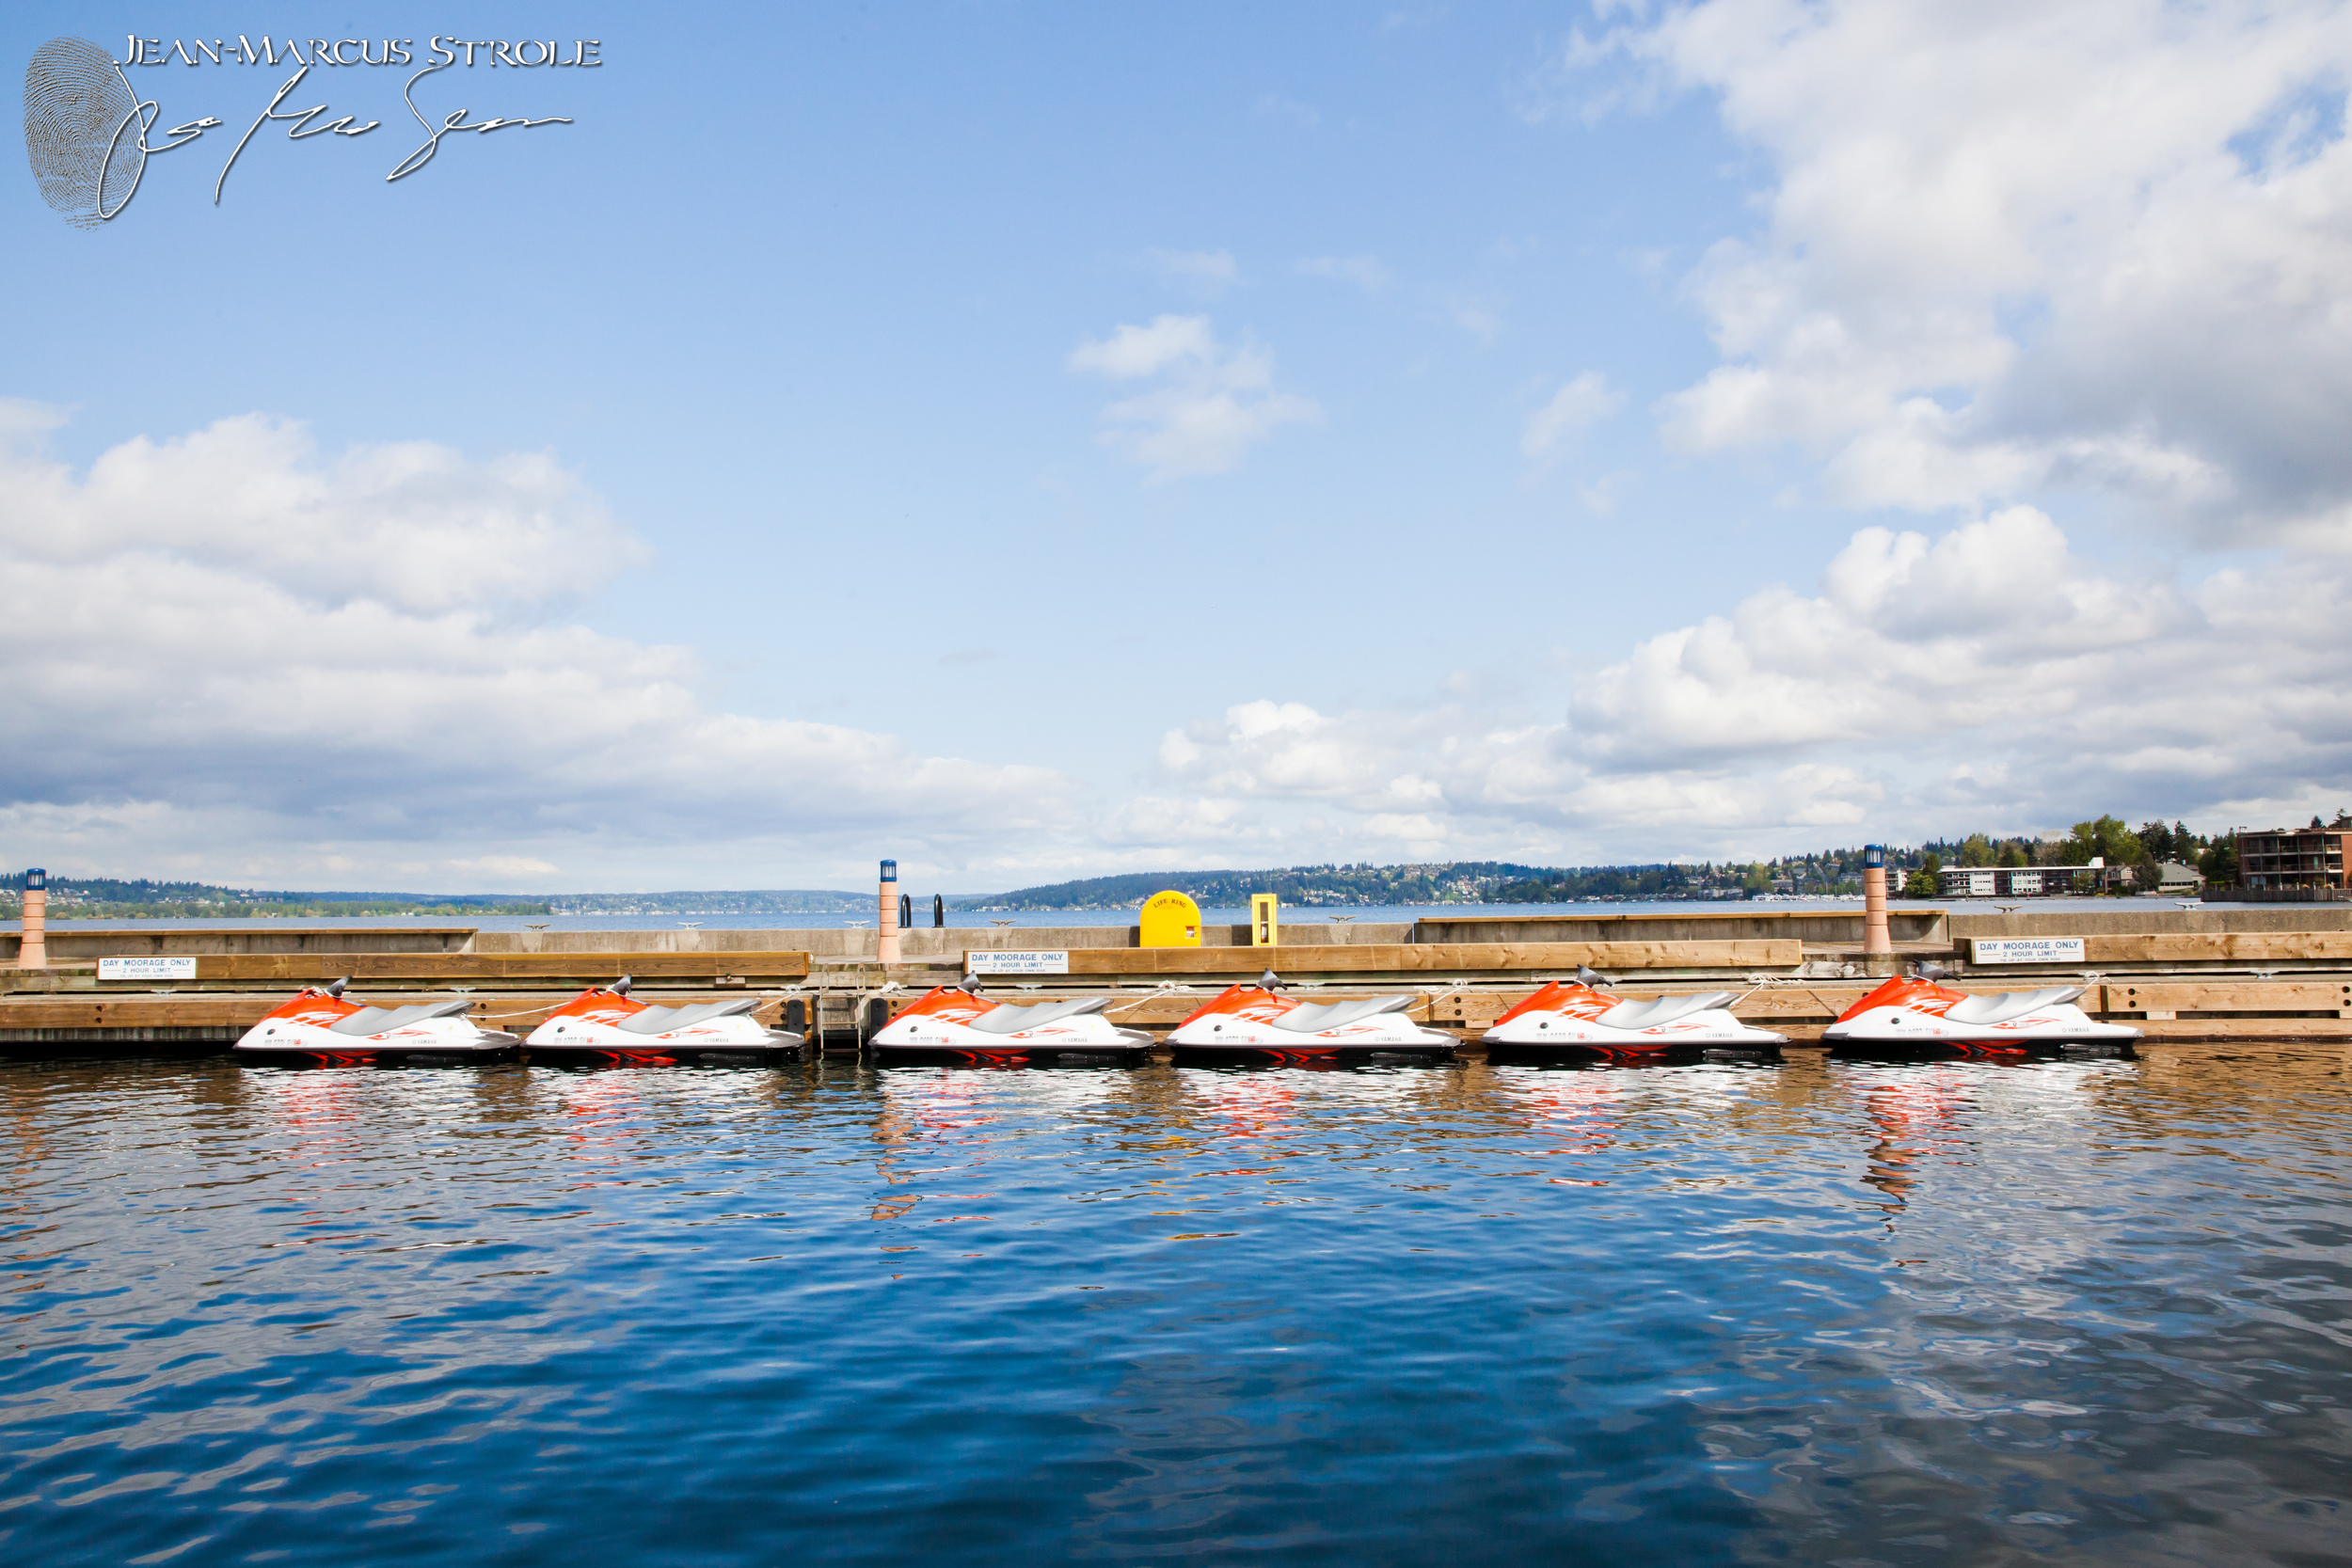 Carillon_Point_Waterfront_Adventures-Jean-Marcus_Strole_Photography-18.jpg